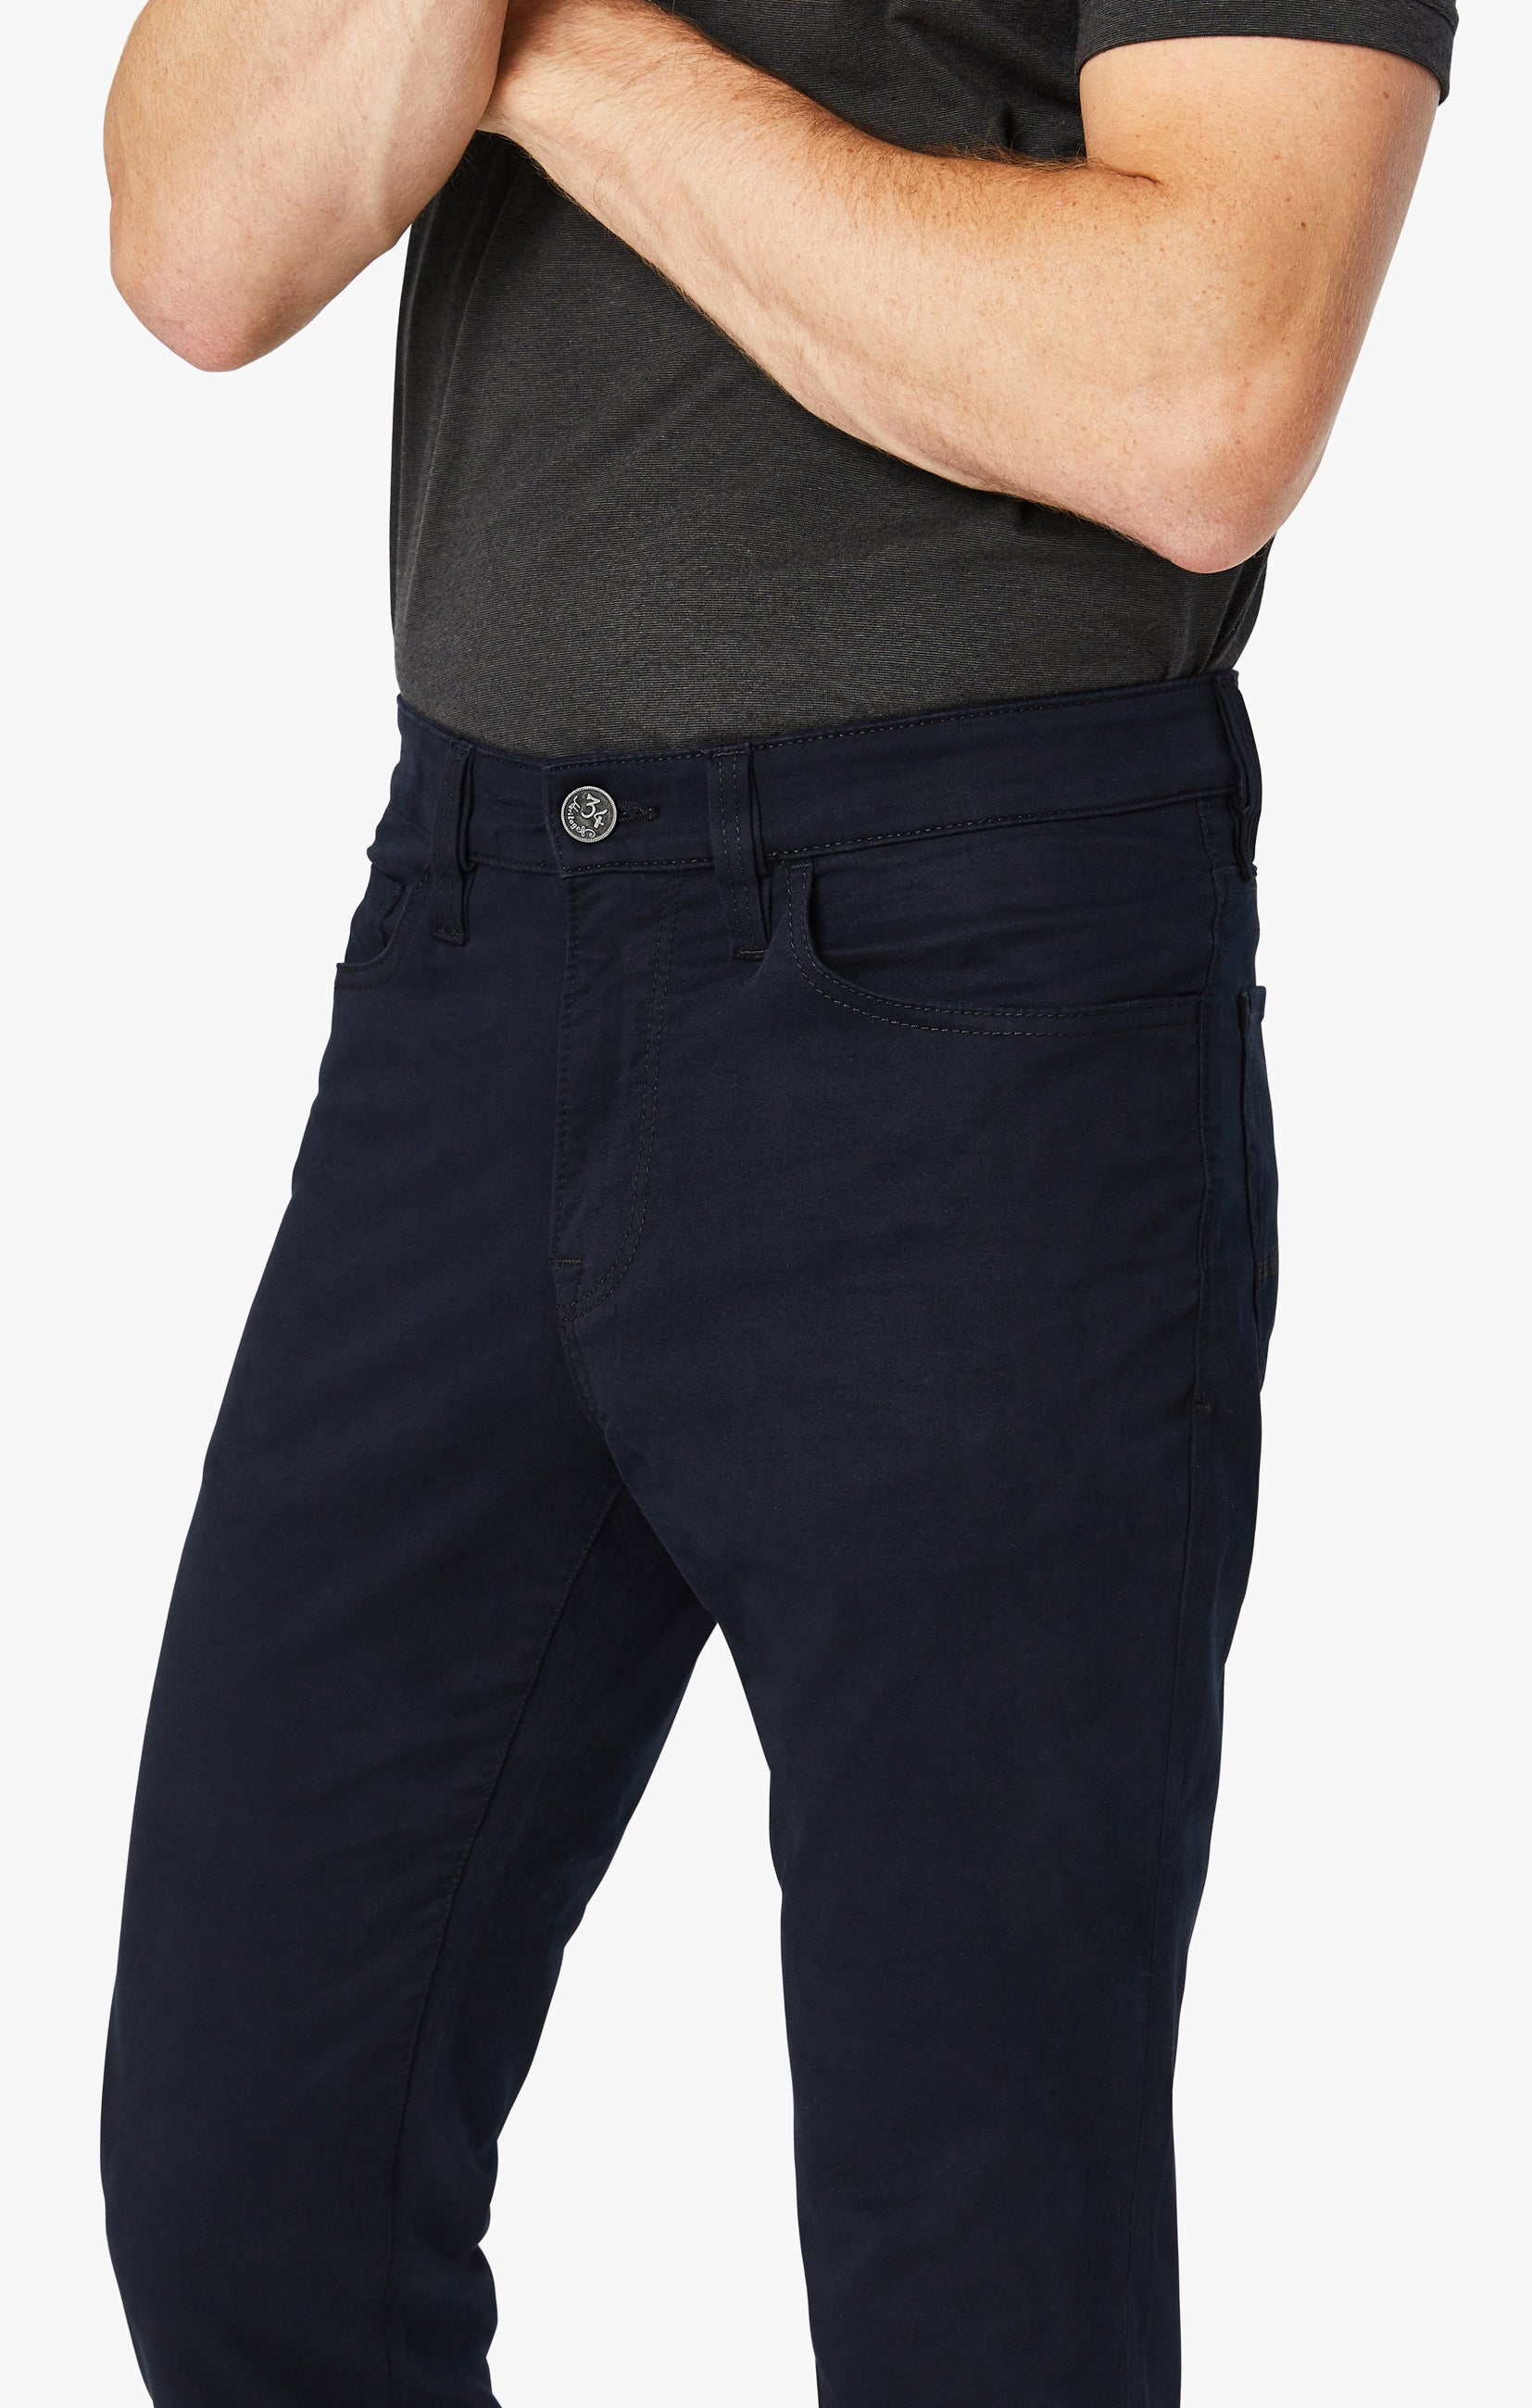 Charisma Relaxed Straight Pants in Navy Twill Image 3